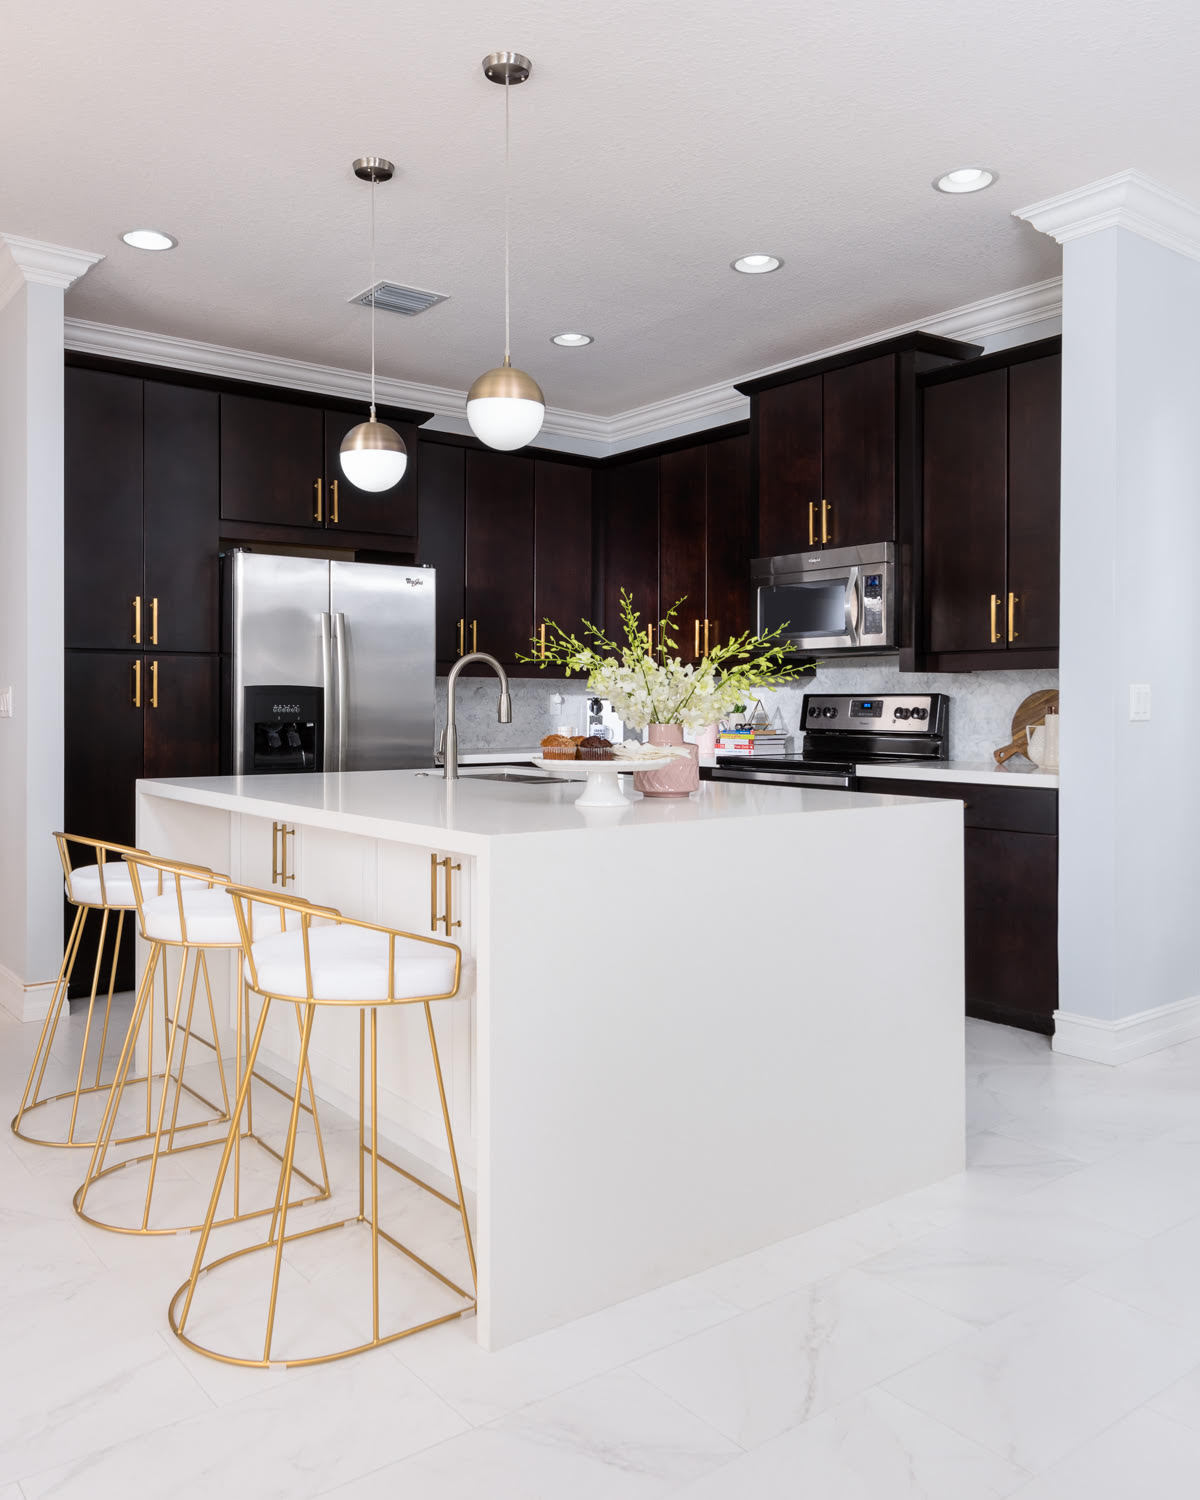 Live Laugh Decorate: How To Create a Stylishly Glam Kitchen - On a on